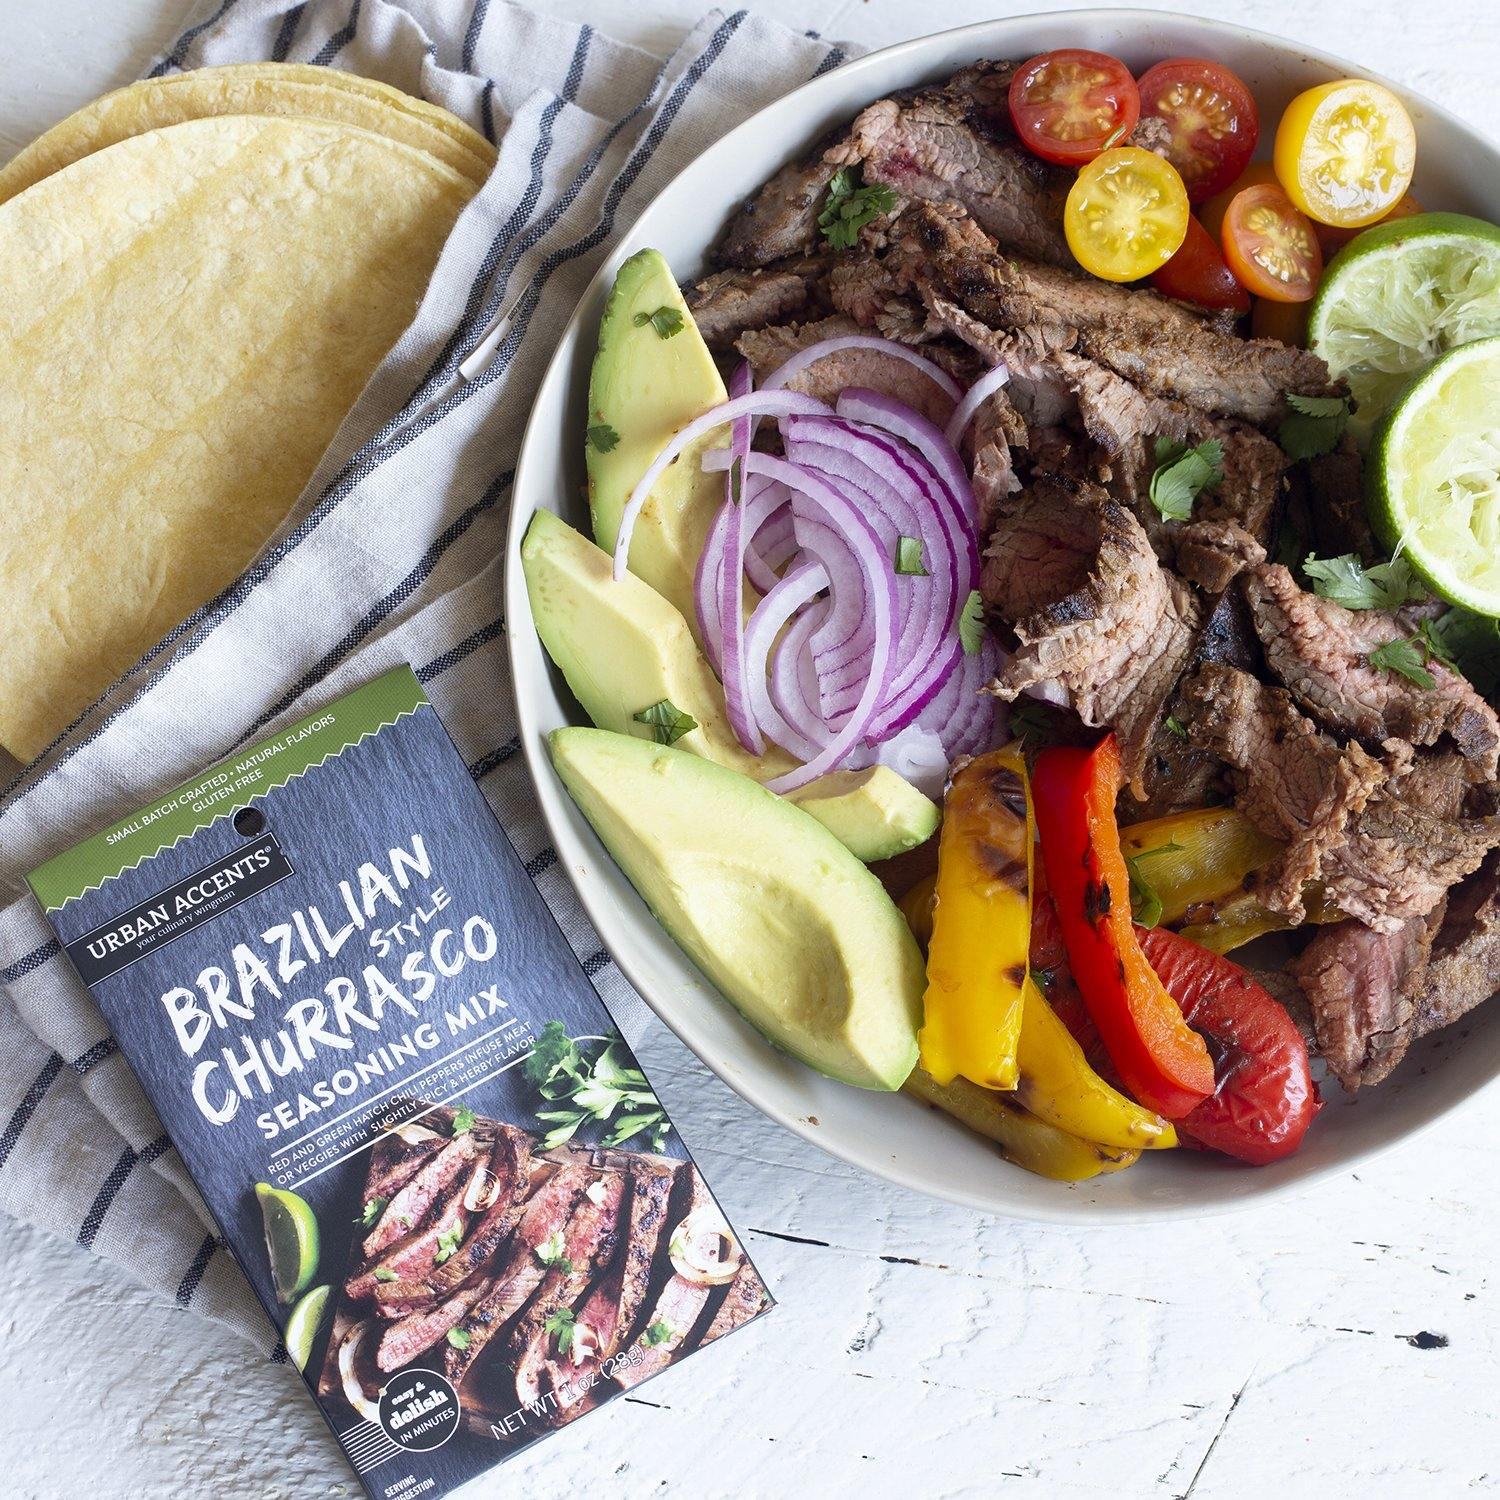 Urban Accents - Brazilian Style Churrasco - Seasoning Mix